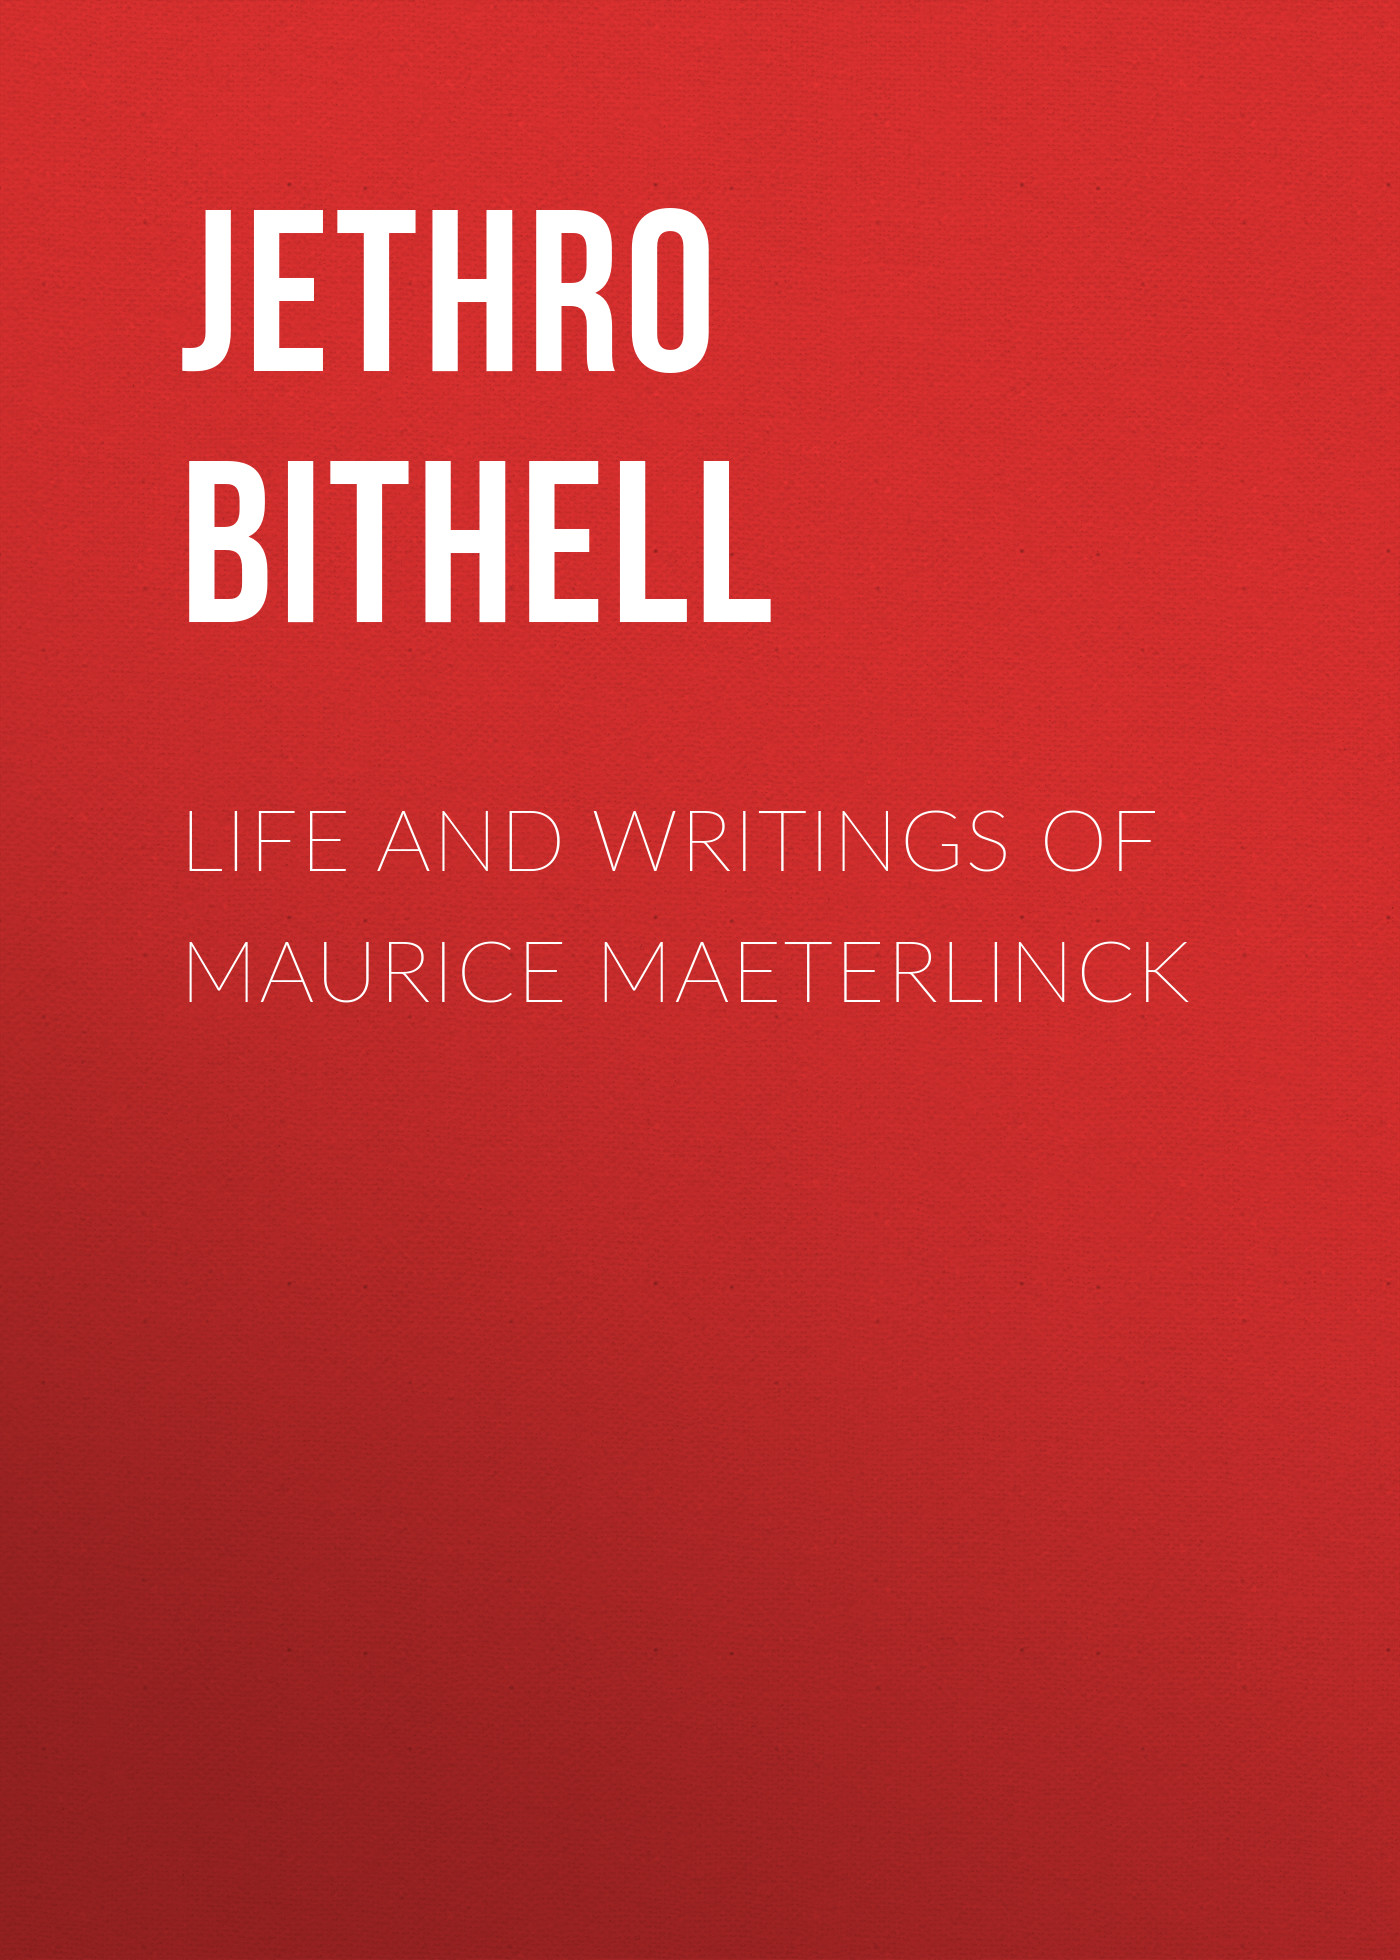 Jethro Bithell Life and Writings of Maurice Maeterlinck maurice maeterlinck the buried temple